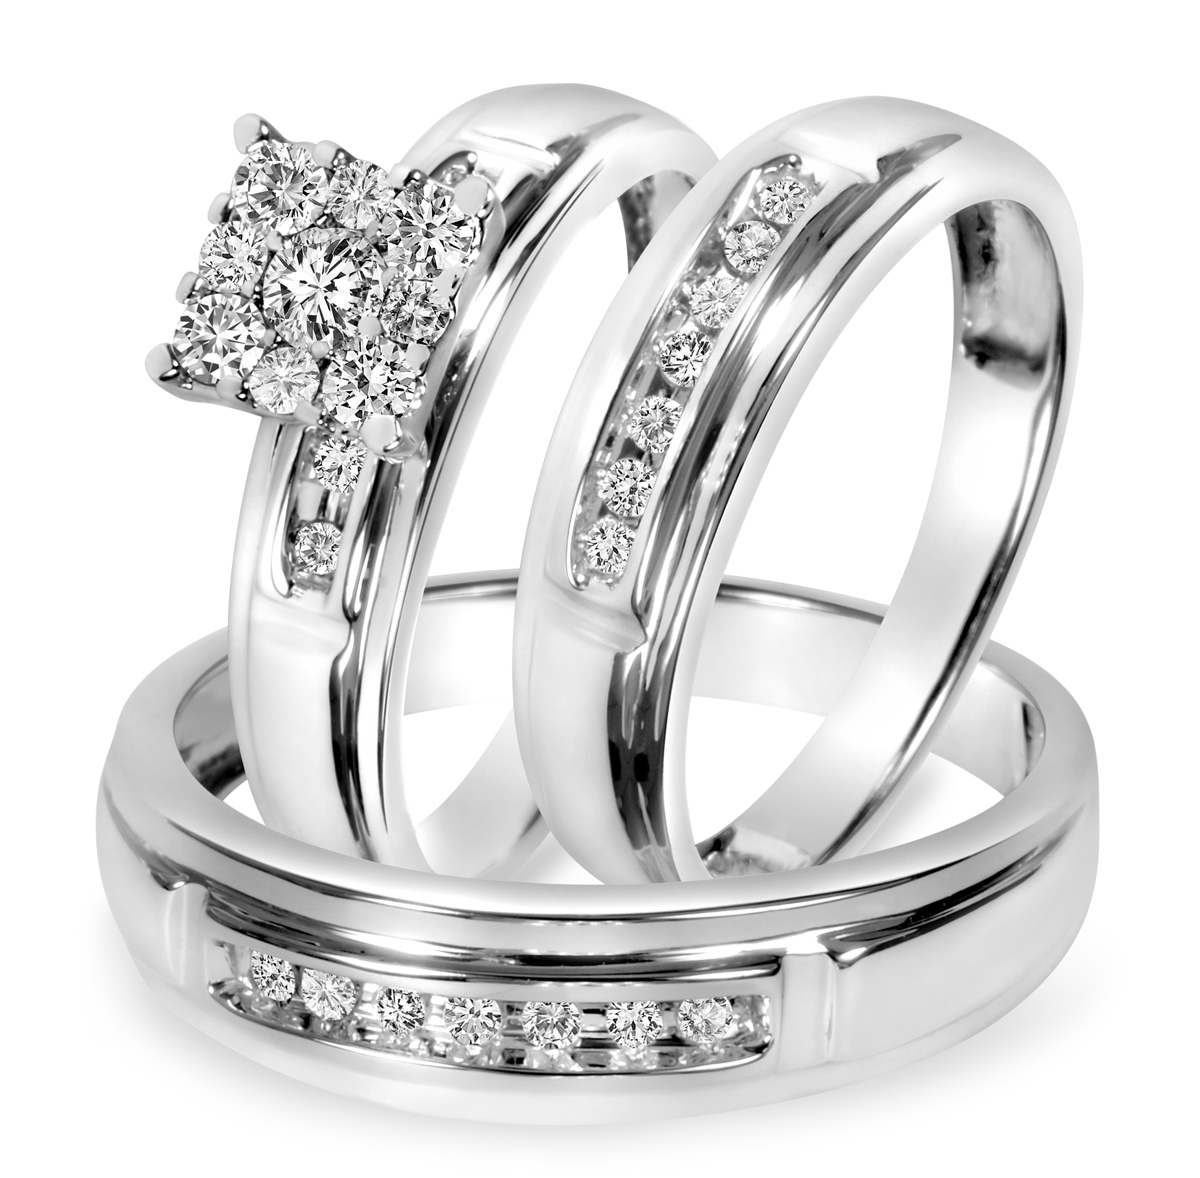 white gold wedding ring sets 1 2 ct t w trio matching wedding ring set 10k 1335